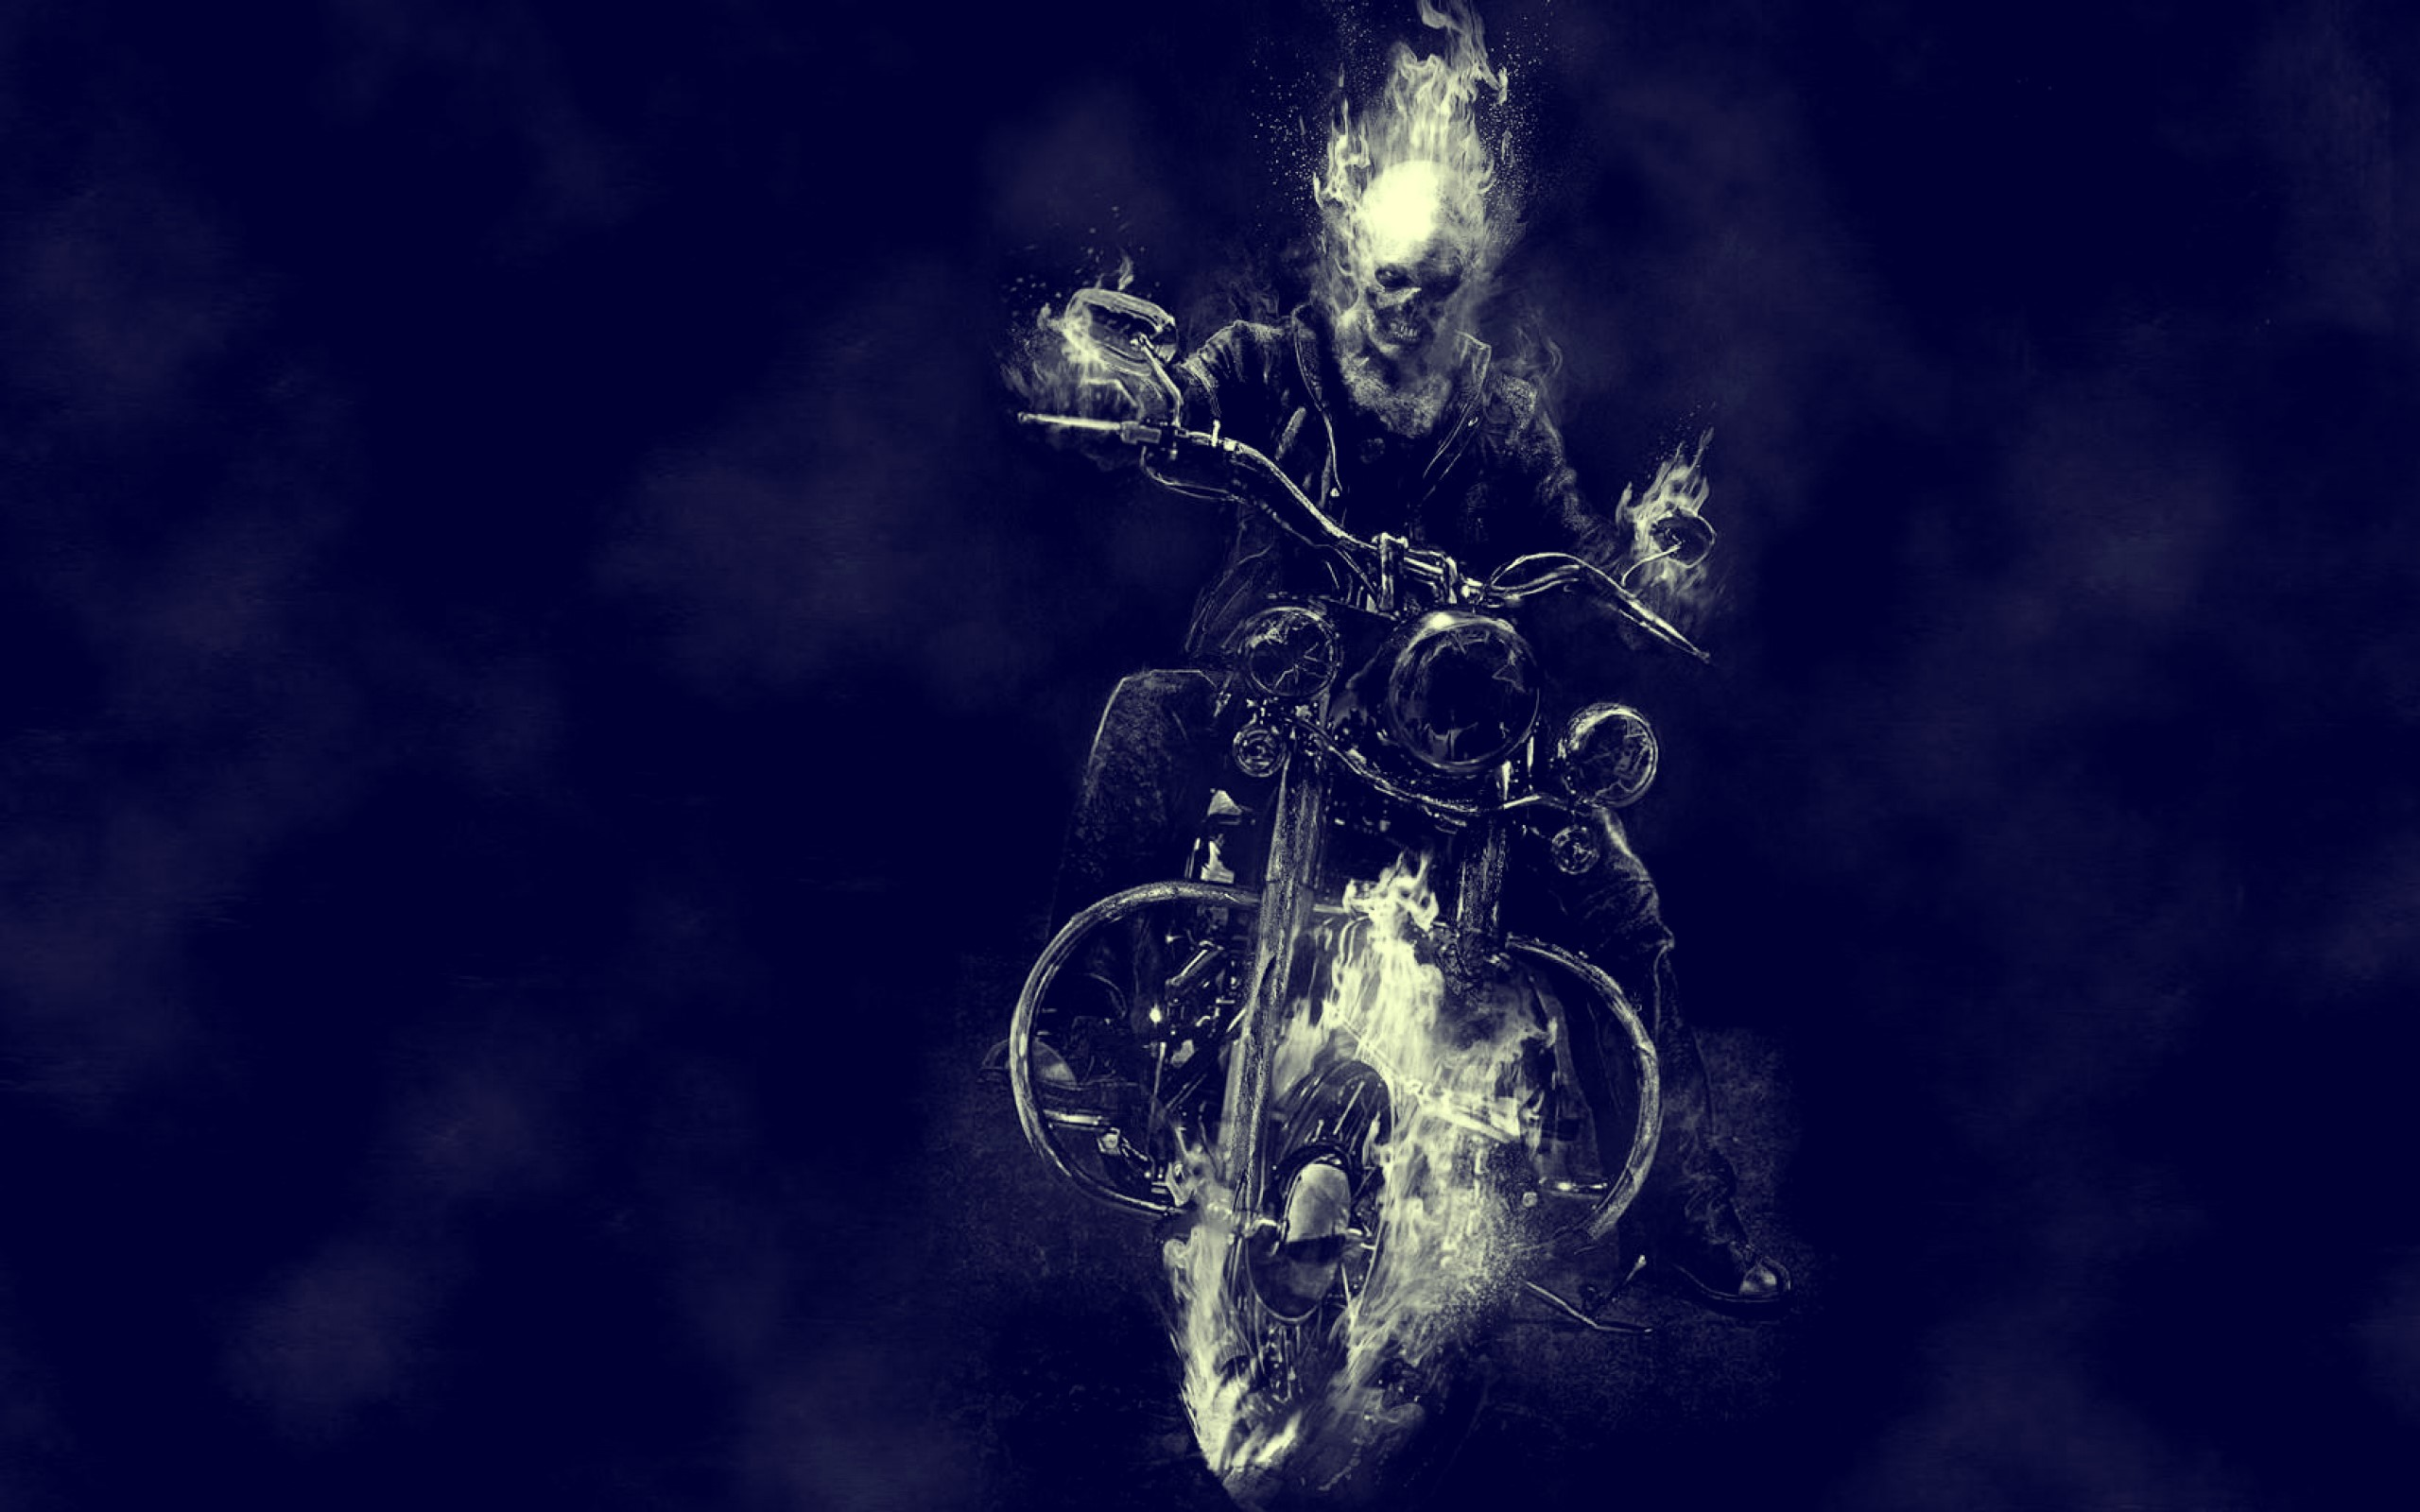 Ghost Rider Movie Bike Motorcycle Skull wallpaper Best HD Wallpapers 2560x1600